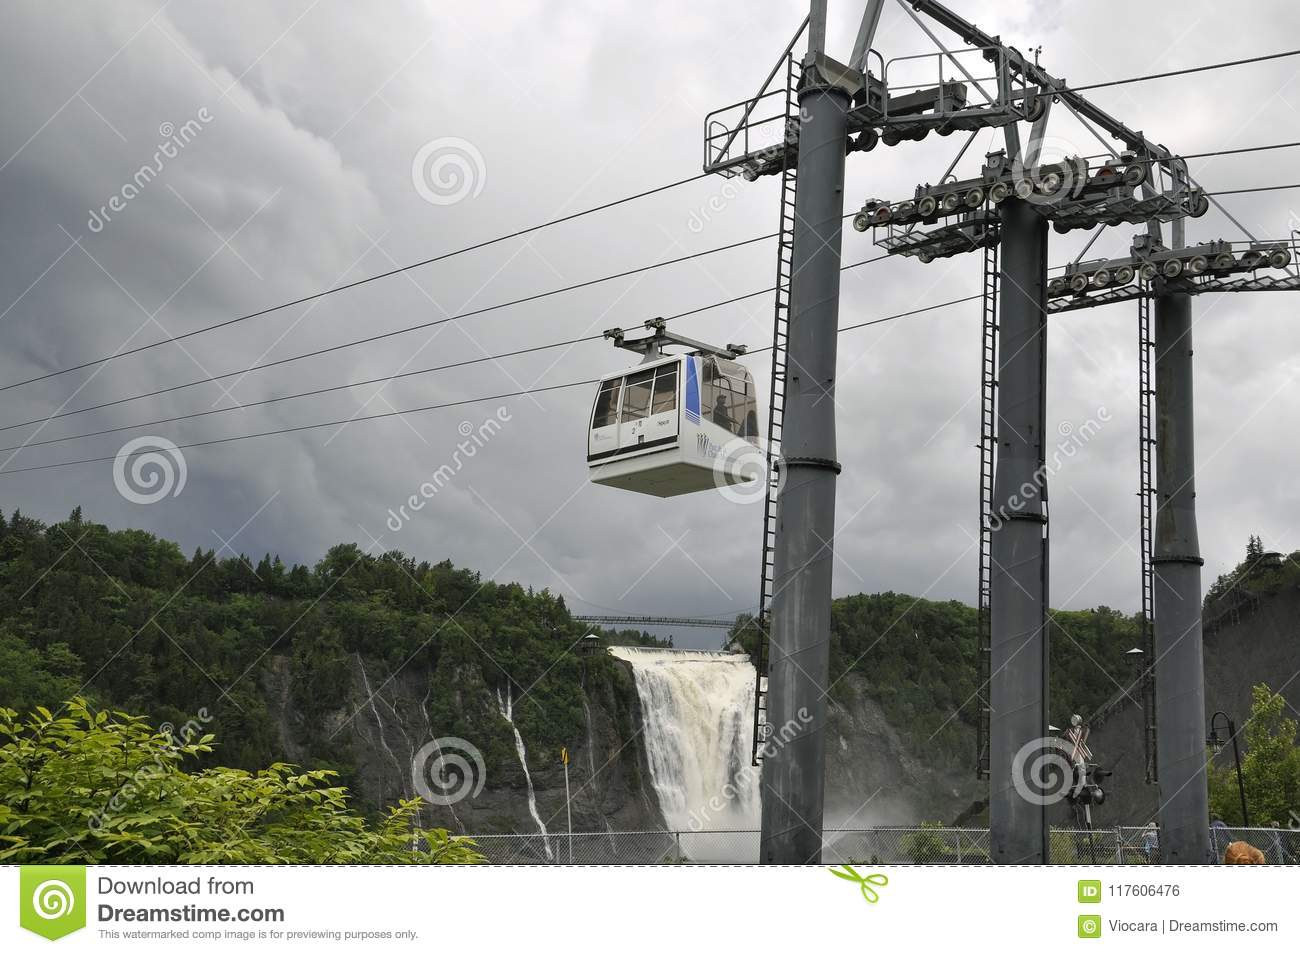 Cable Cabin above Montmorency Falls from Quebec Province in Canada